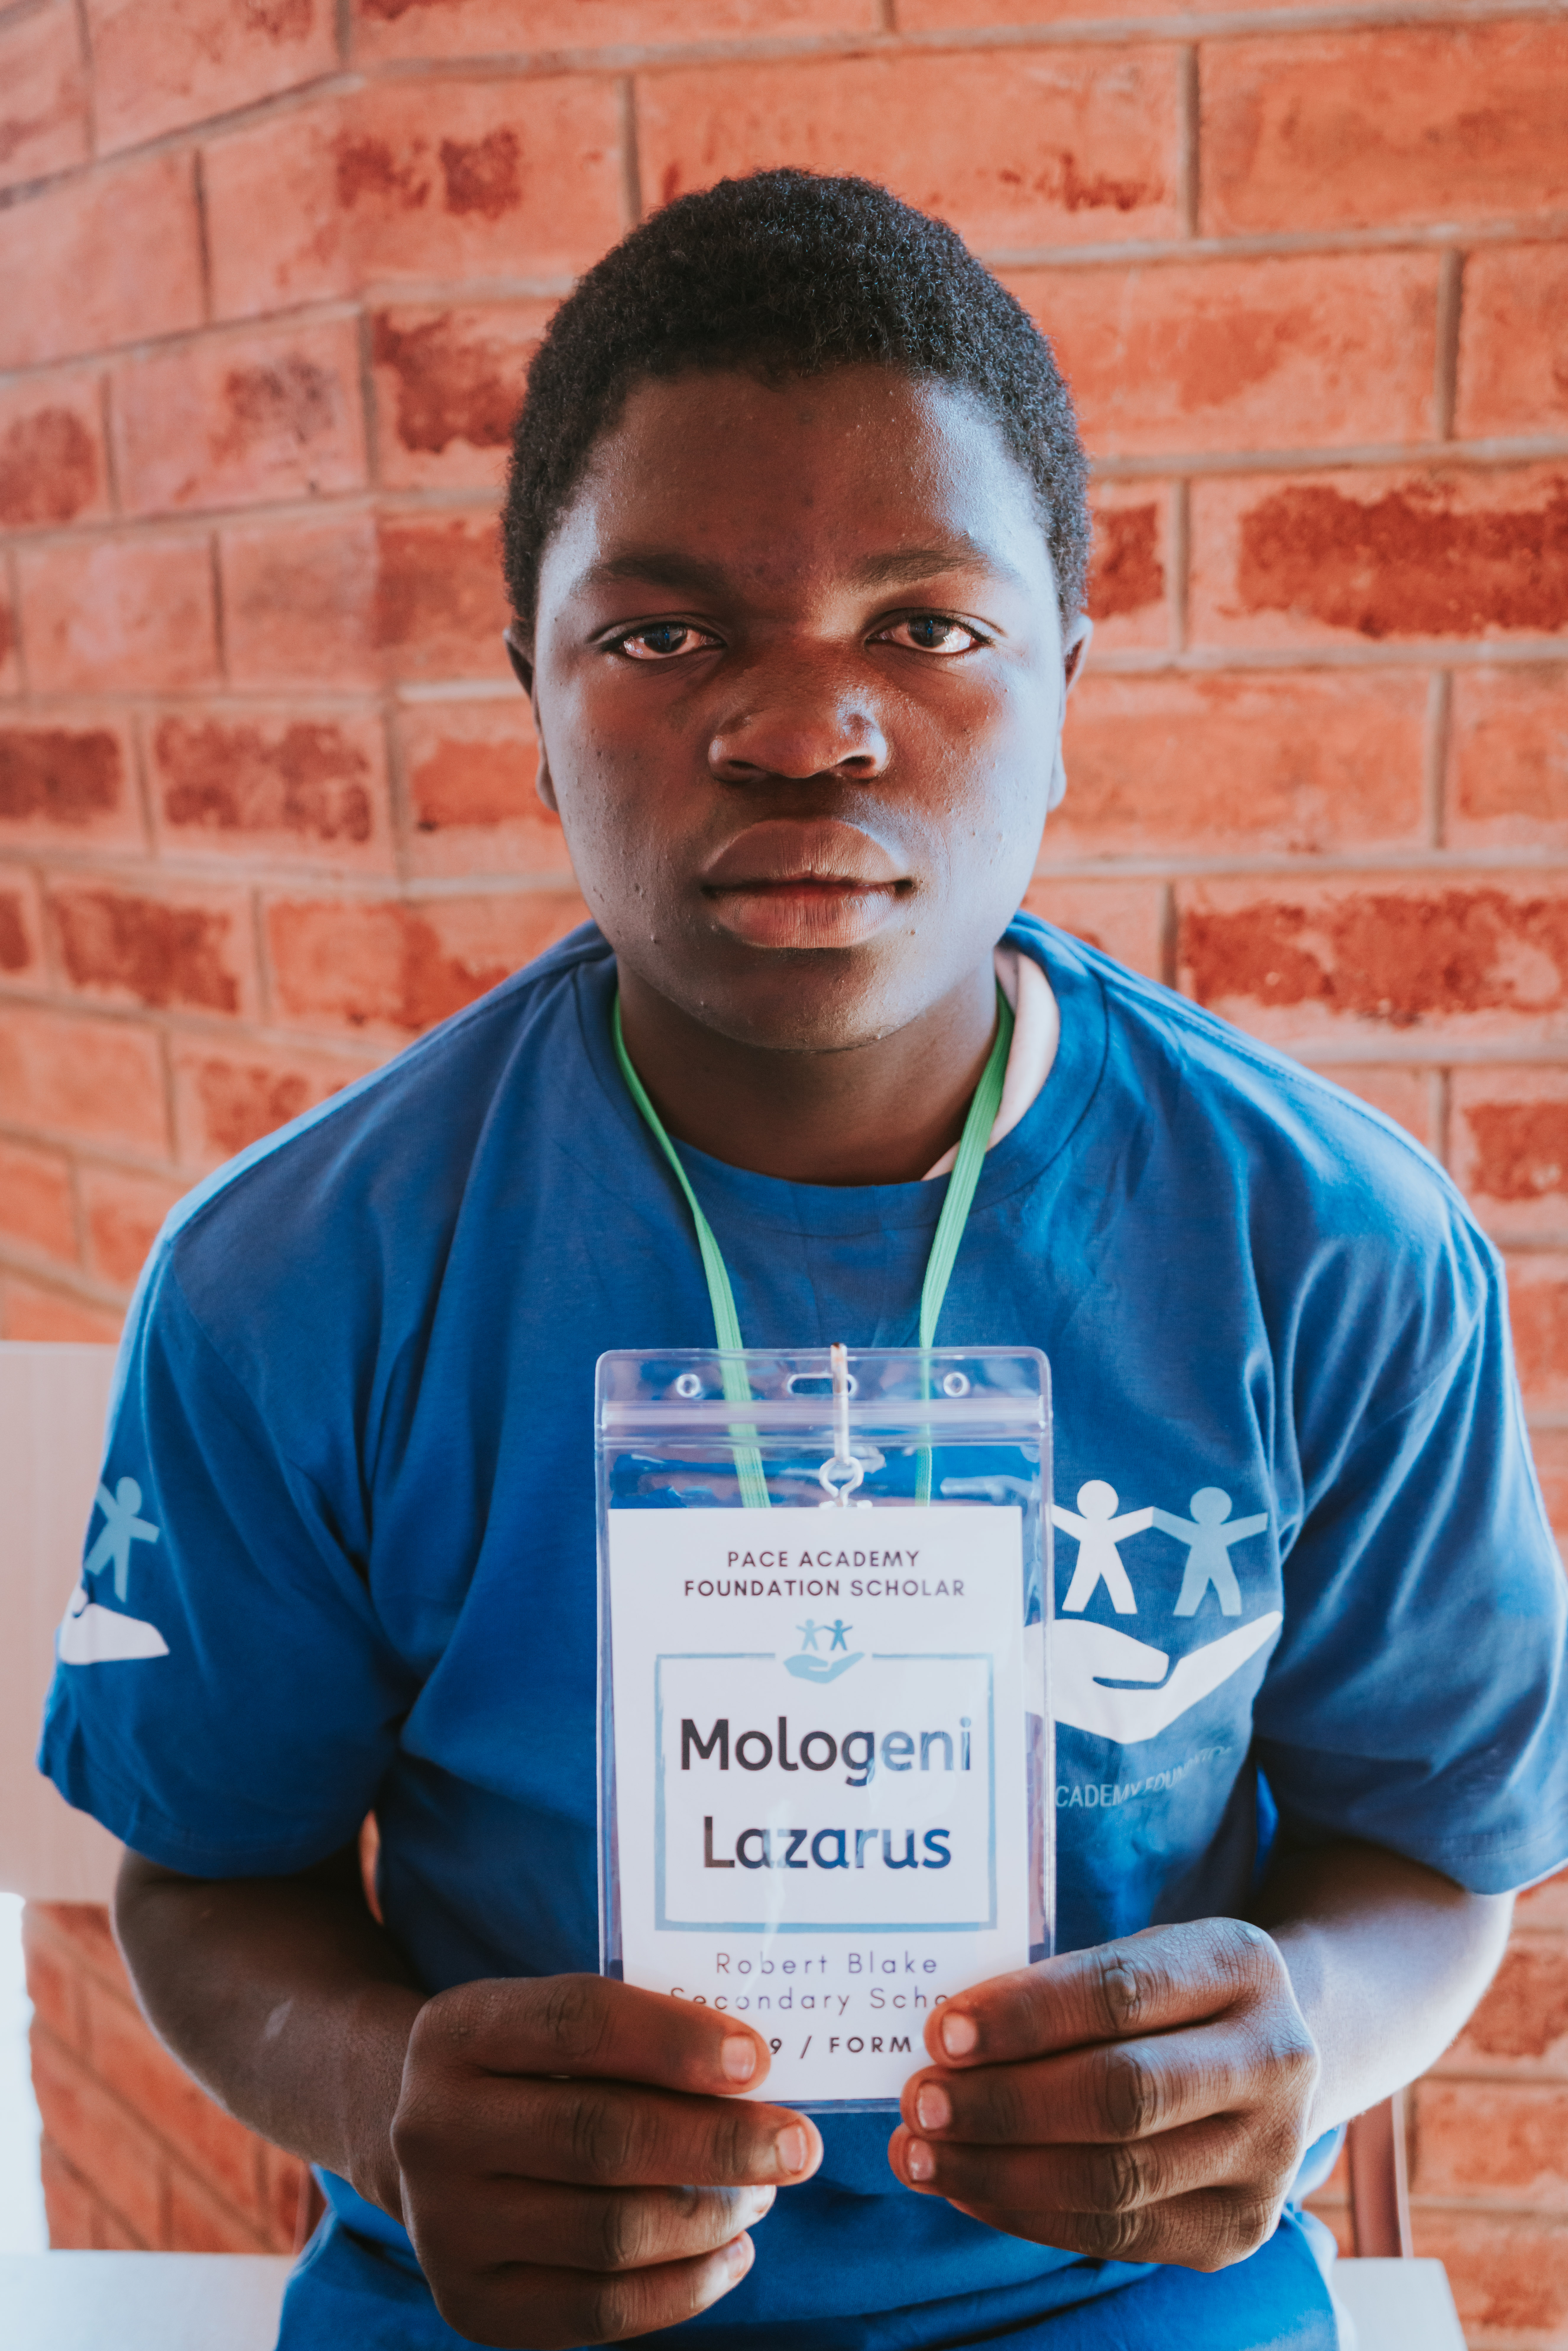 Mologeni Lazarus (Robert Blake Secondary